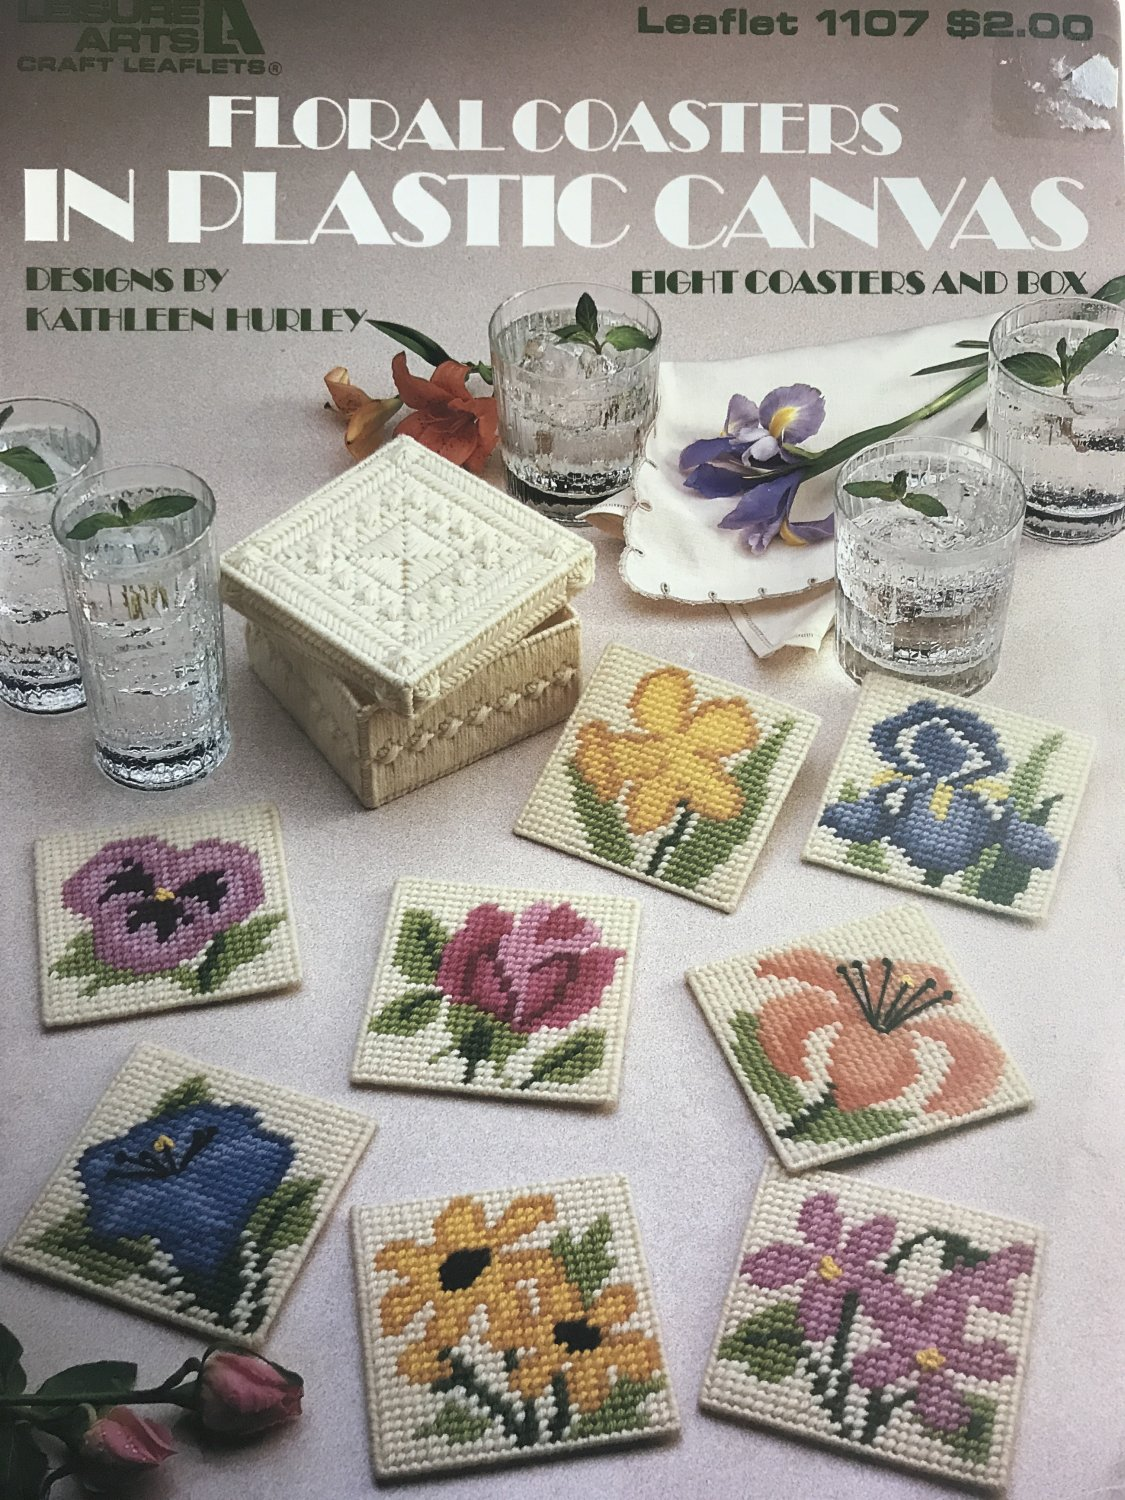 Floral Coasters in Plastic Canvas Leisure Arts  1107 Eight flower designs and box